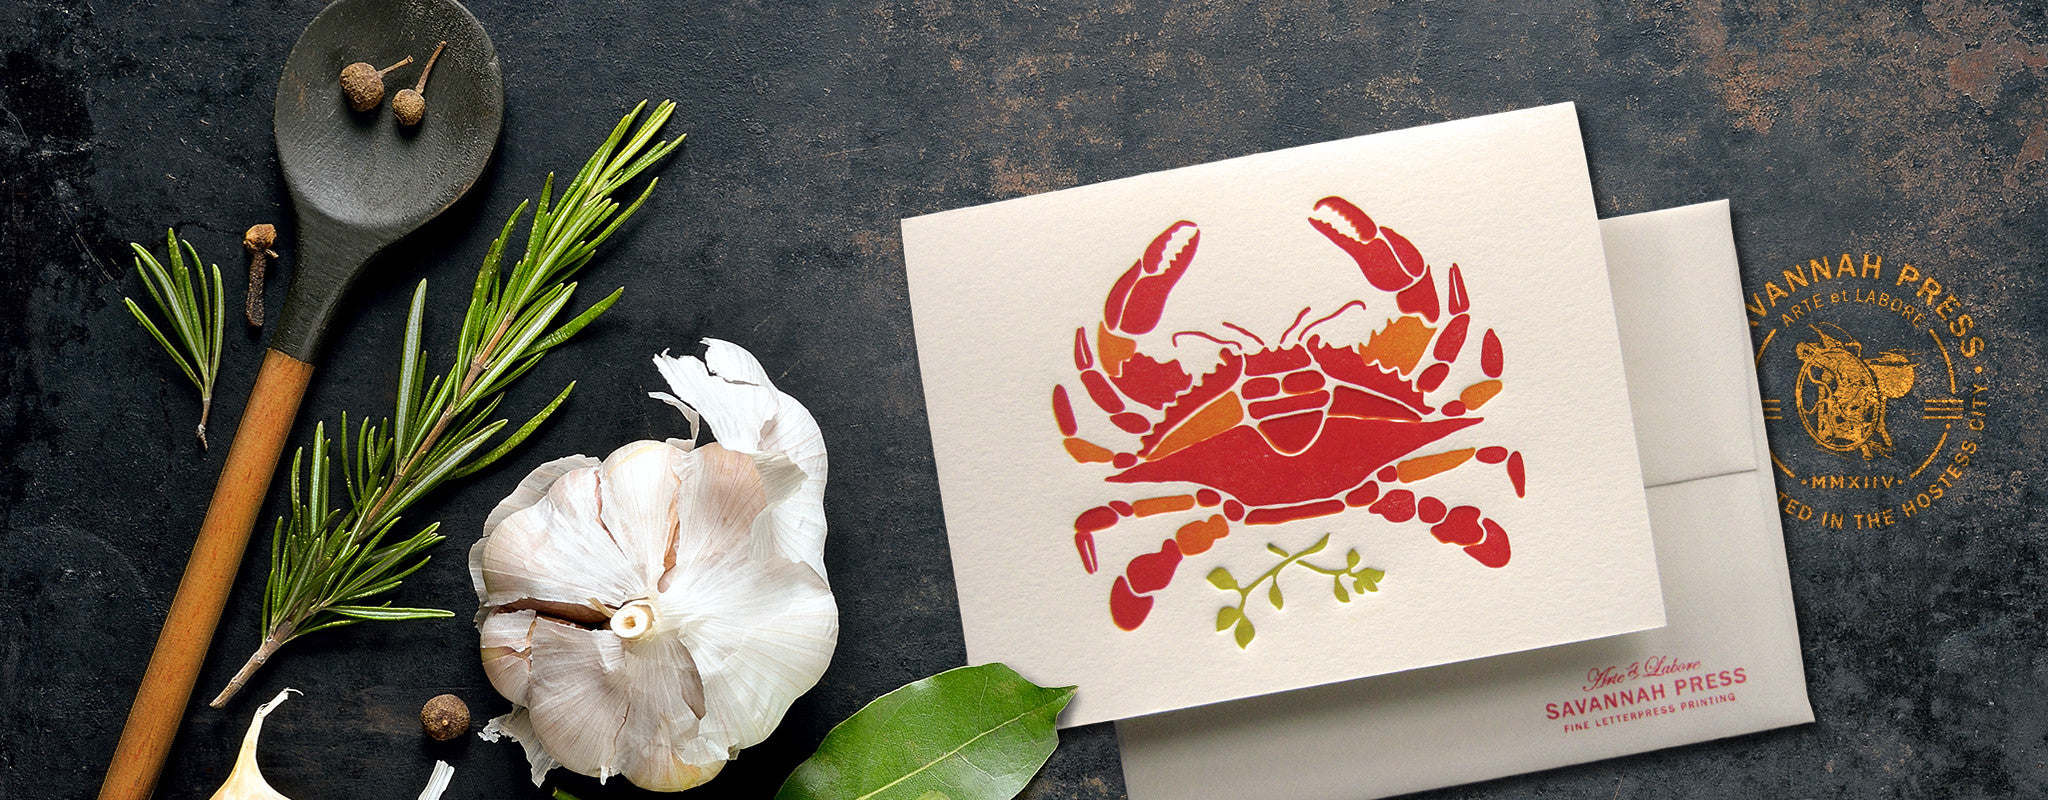 Blue Crab Letterpress Card